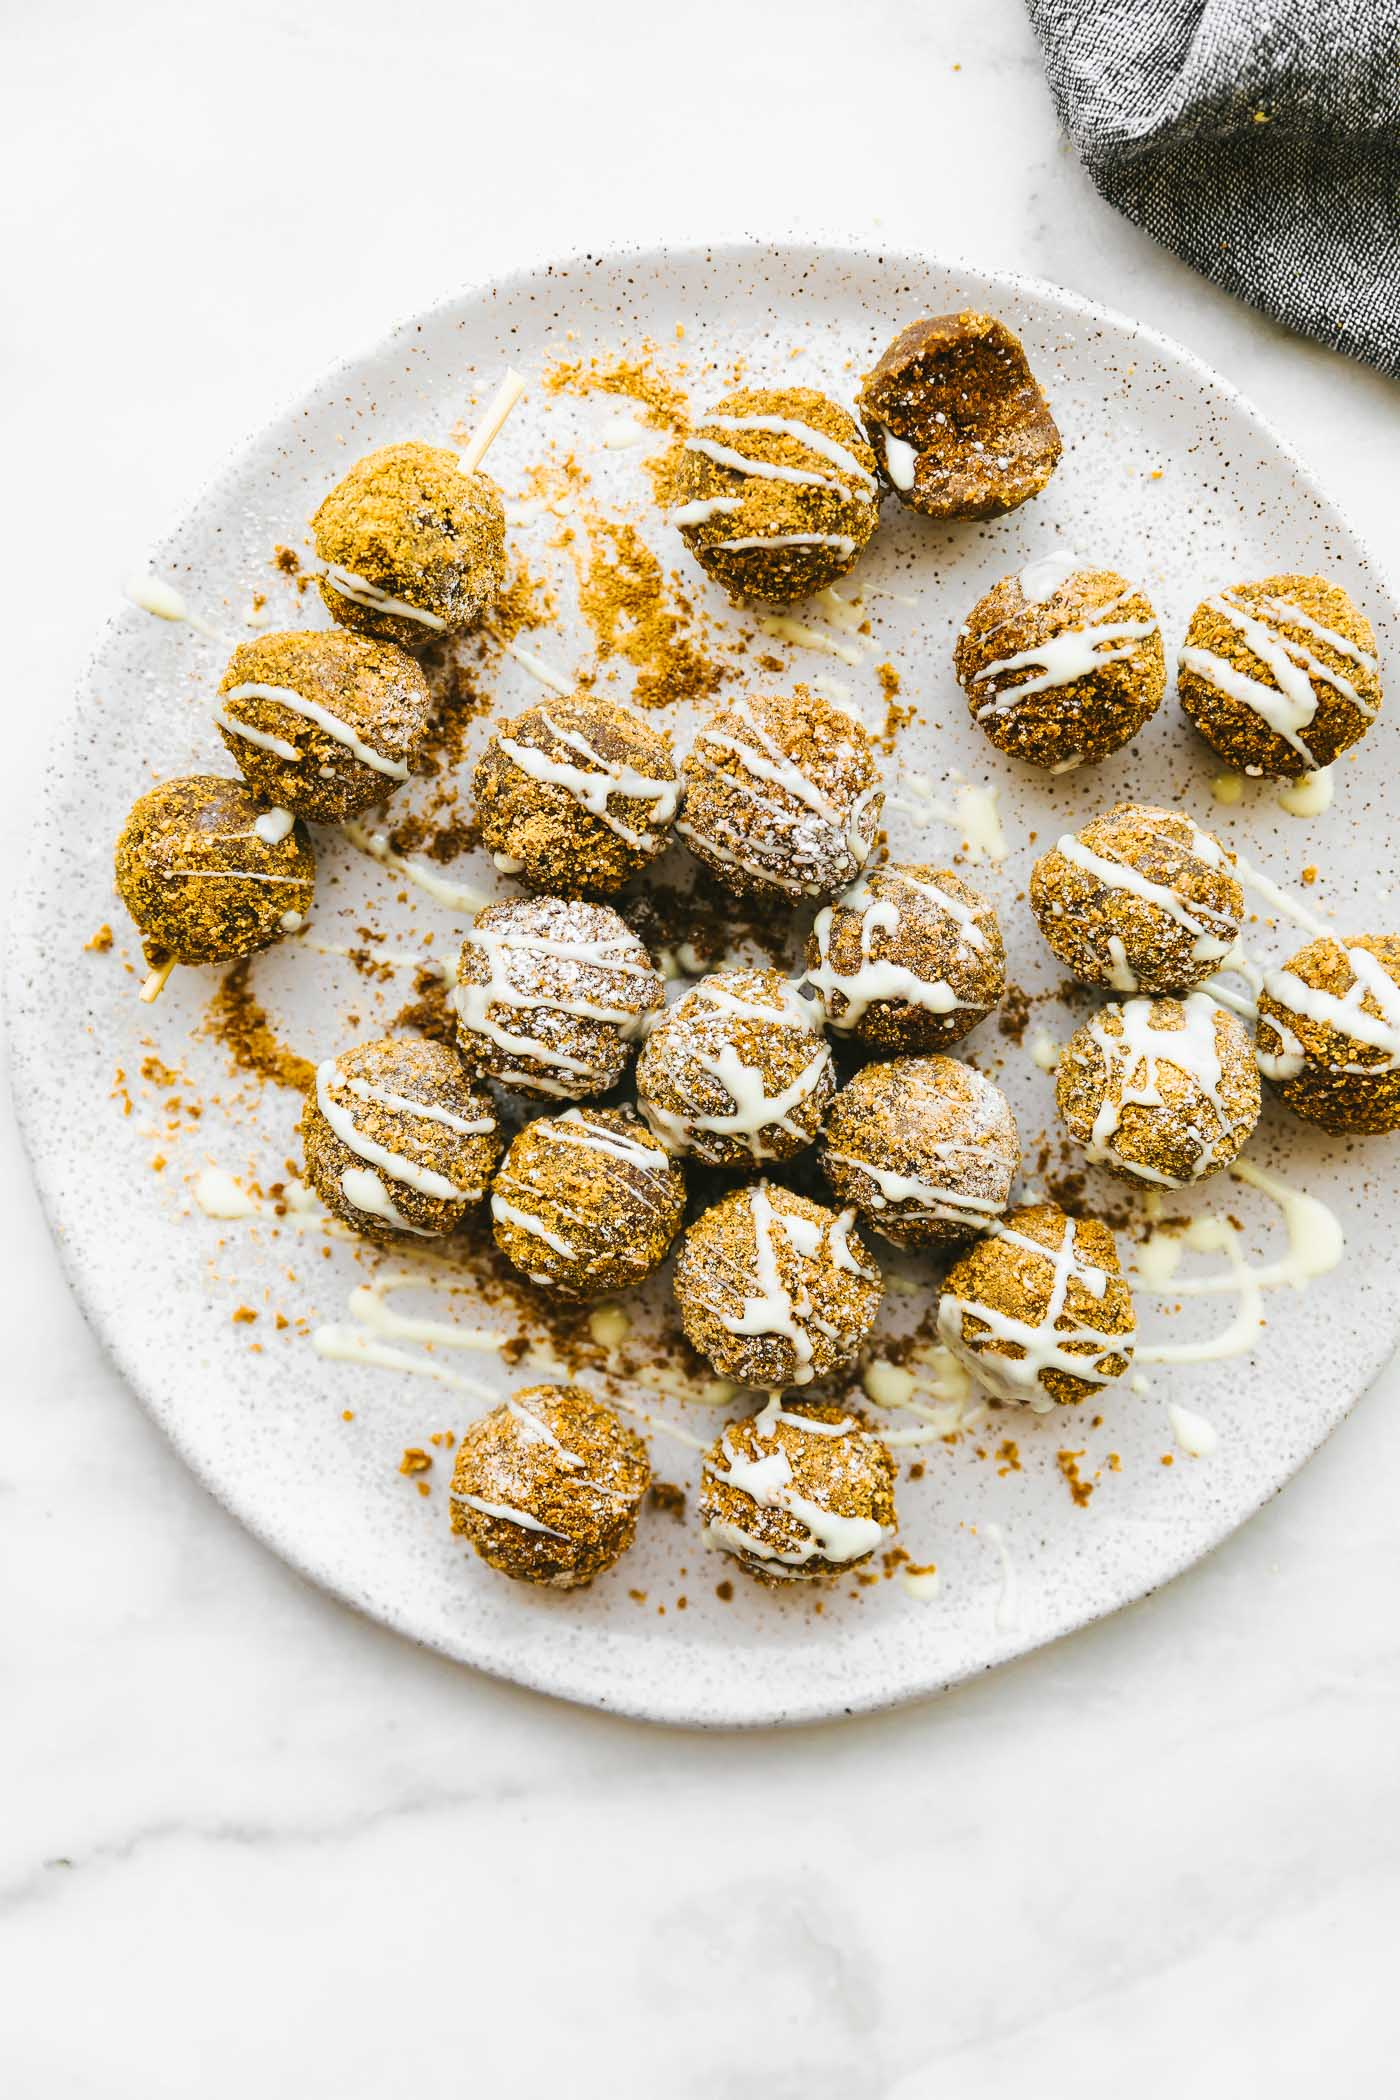 These Coconut Sugar Cinnamon CakeBites make a delicious bite size dessert! They require little effort and simple ingredients. A blend of Coconut oil, gluten free vanilla cake mix, melted peanut butter, coconut sugar, and gluten free cinnamon grahams. White chocolate drizzle optional, but also a total game changer!#cake #bites #vegan #cinnamon #glutenfree #dessert